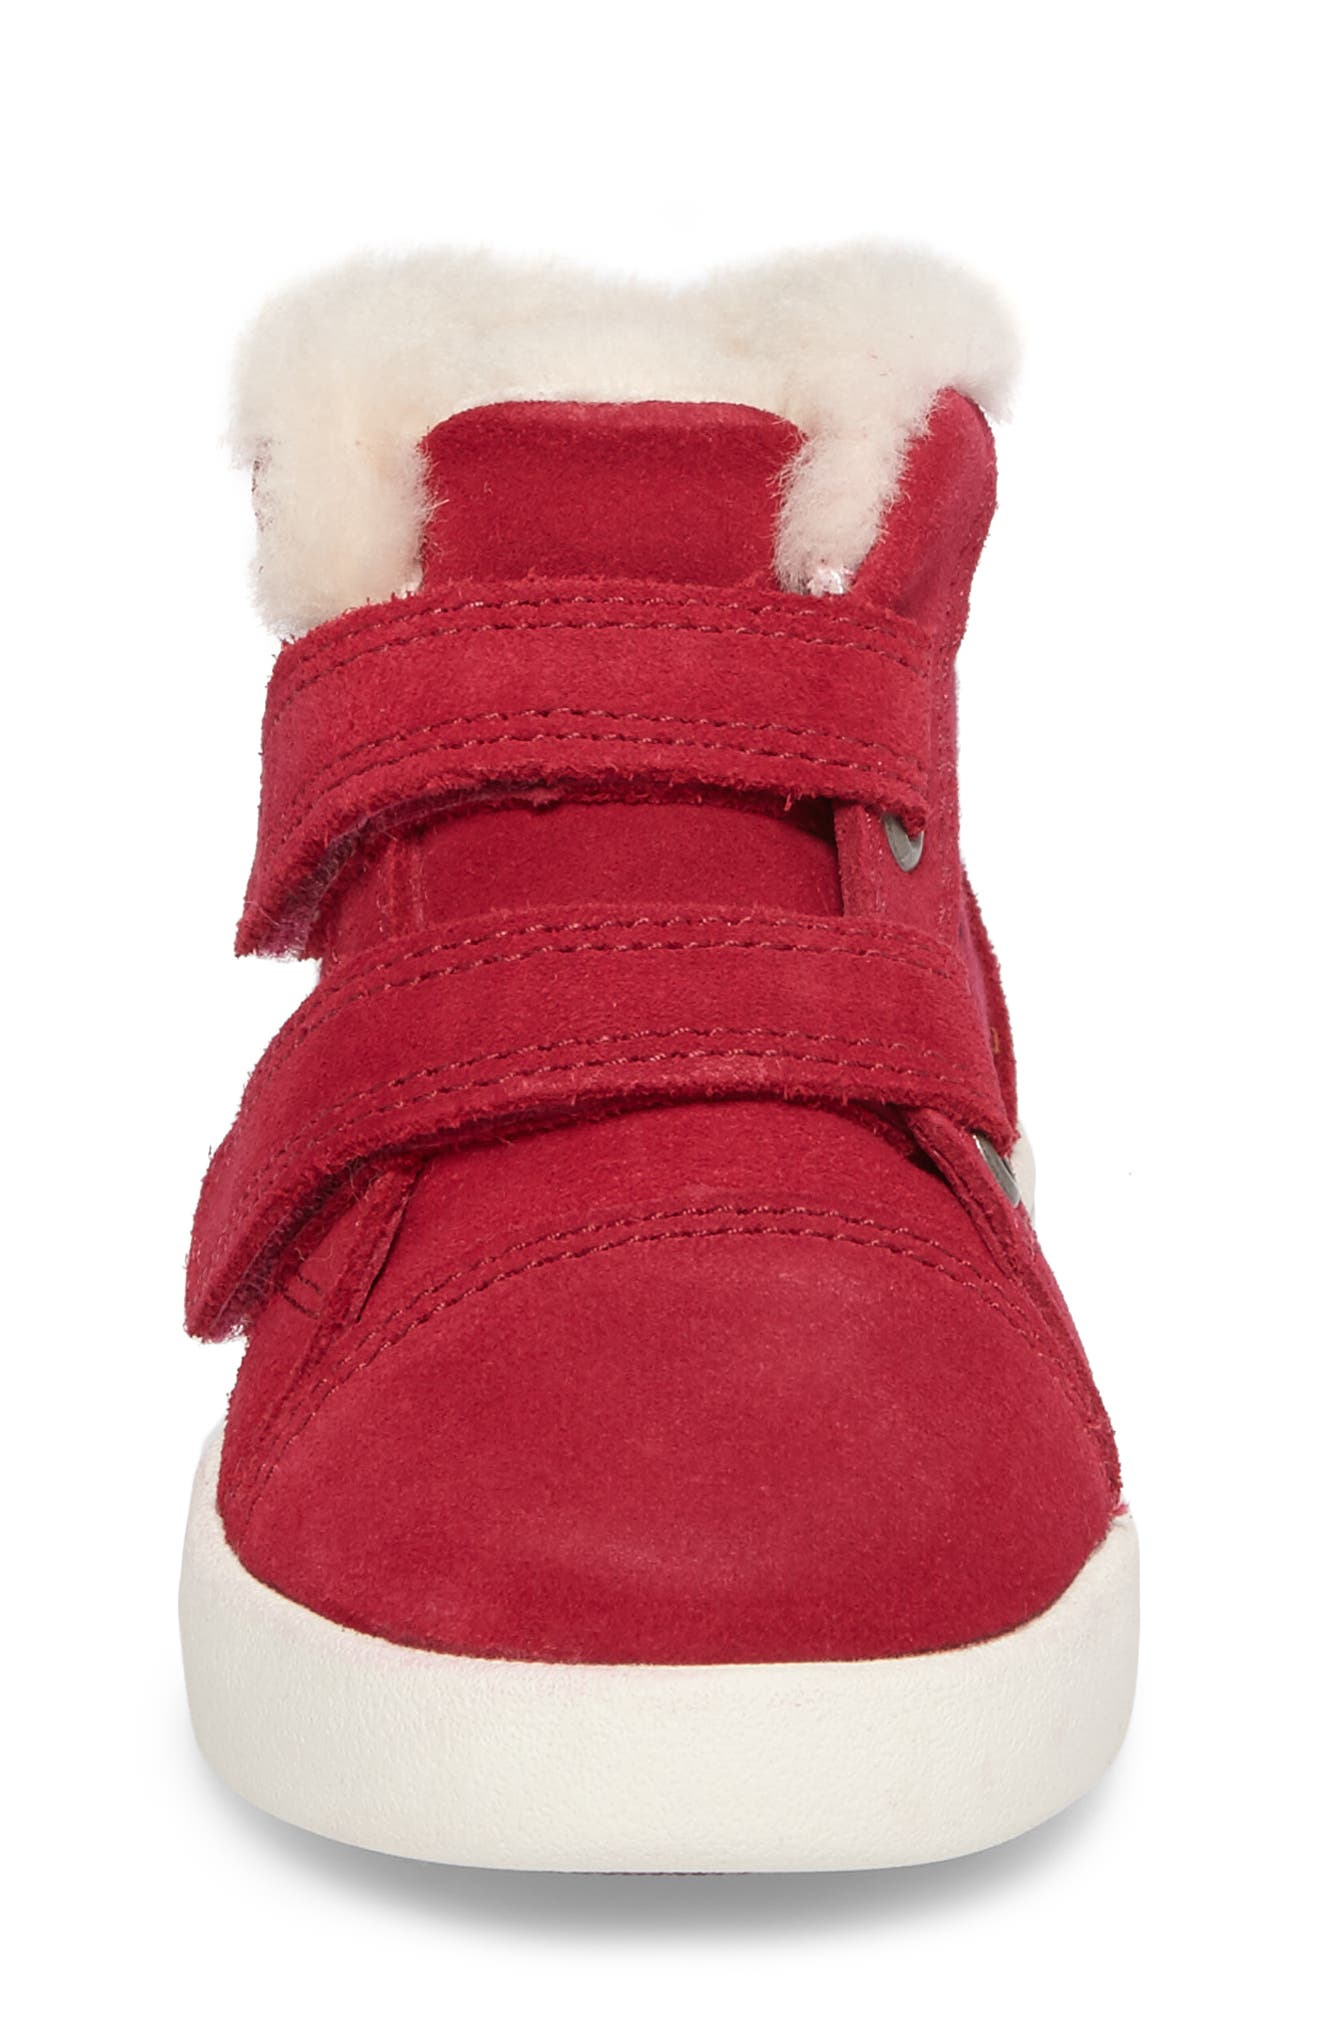 Rennon Stars High Top Sneaker,                             Alternate thumbnail 5, color,                             Brambleberry